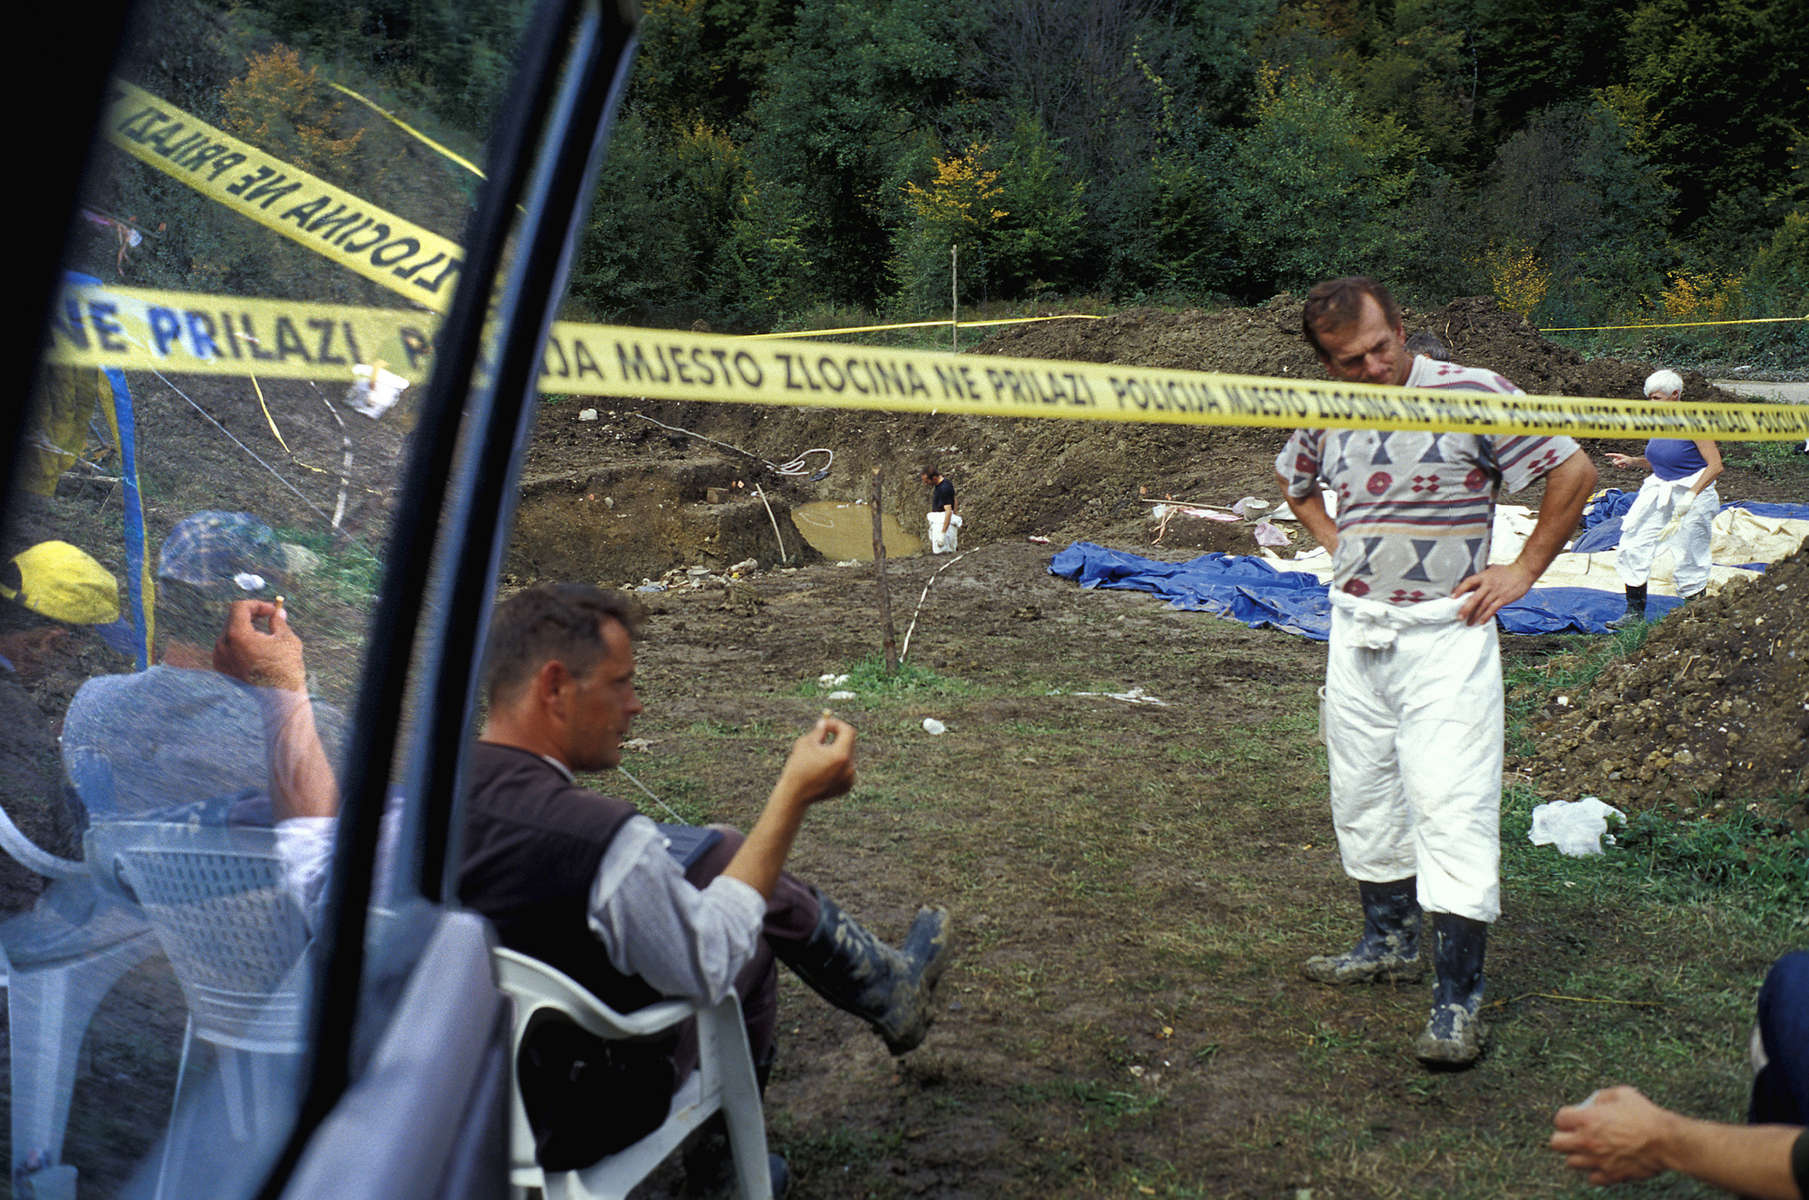 Workers take a break from an exhumation of a mass grave containing victims of the 1995 Srebrenica massacre.